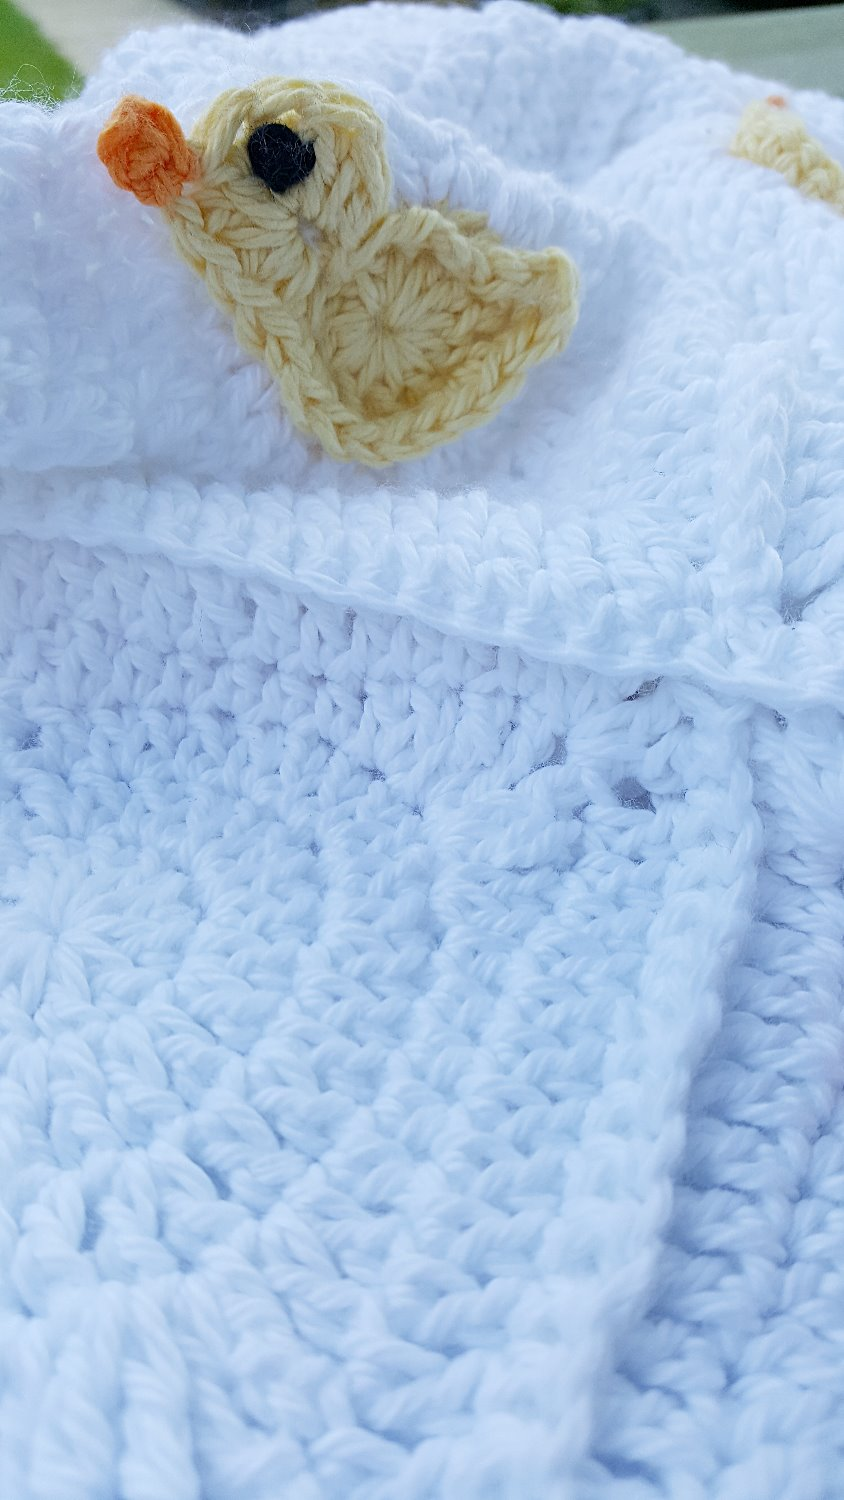 Little Duck Blanket by Kerry Jayne Desig